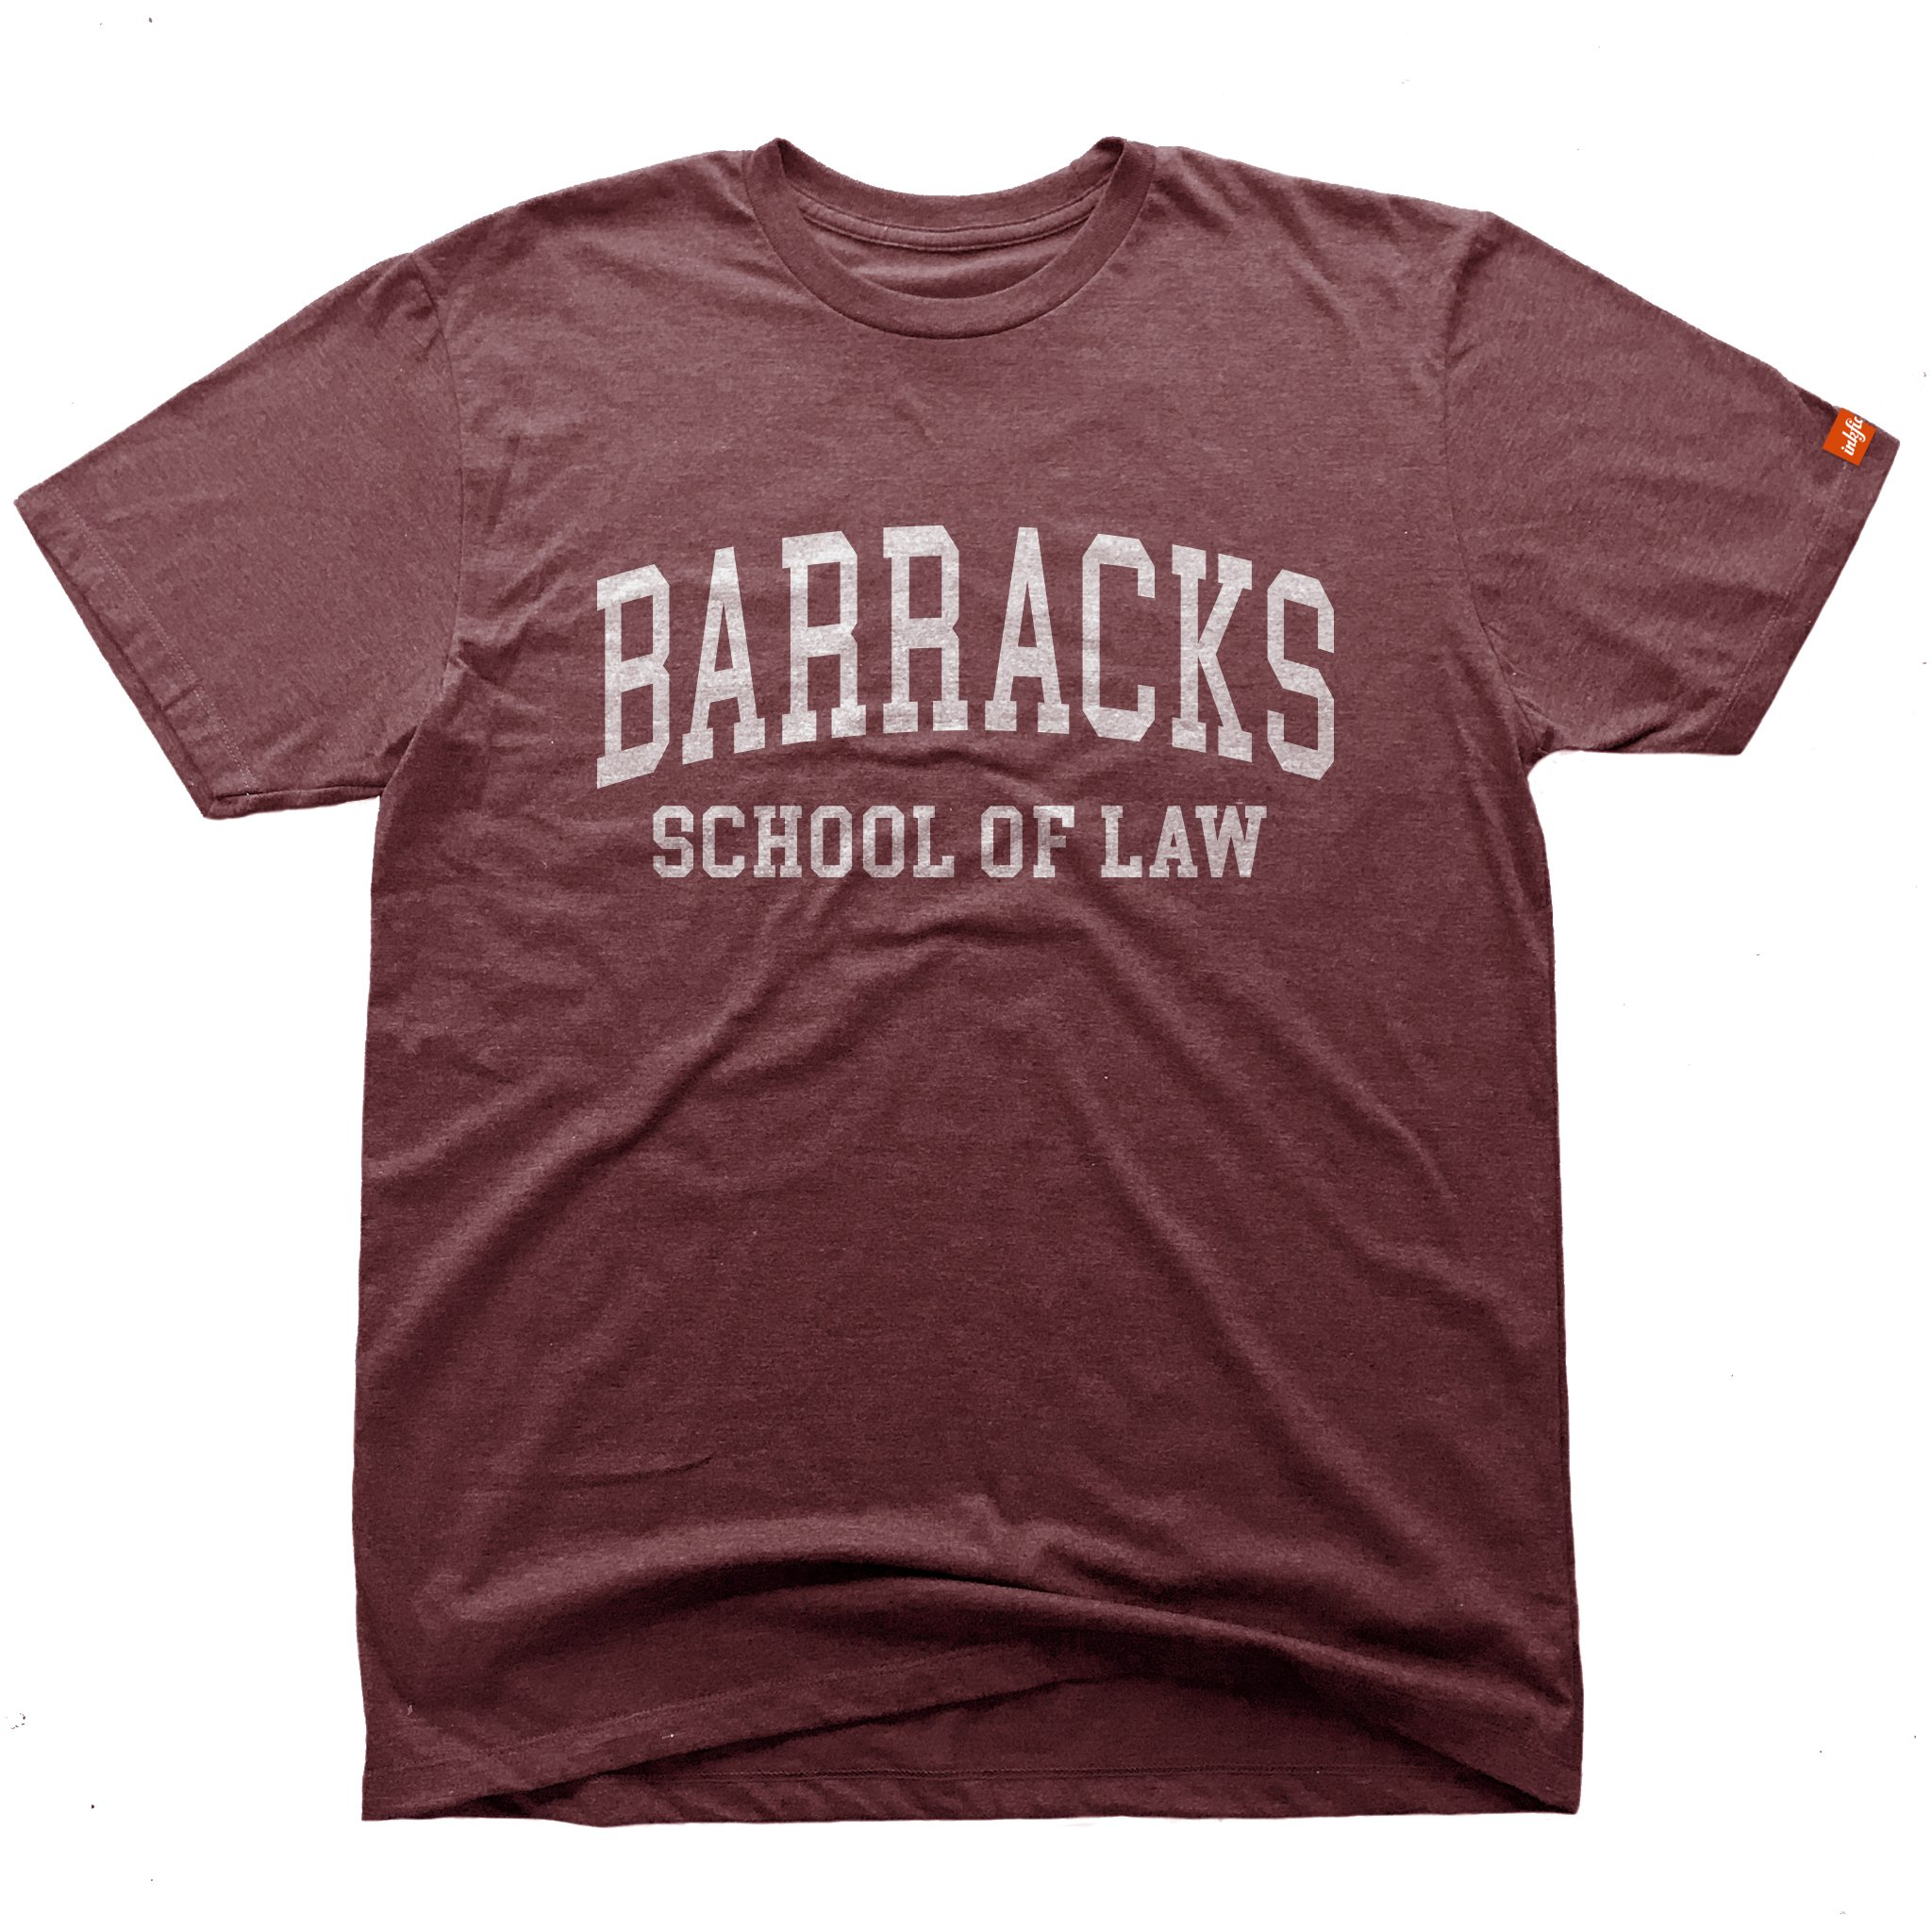 Inkfidel Barracks School of Law Graphic Tshirt Misfire Maroon Army USMC Marine Veteran Apparel (Small) by Inkfidel